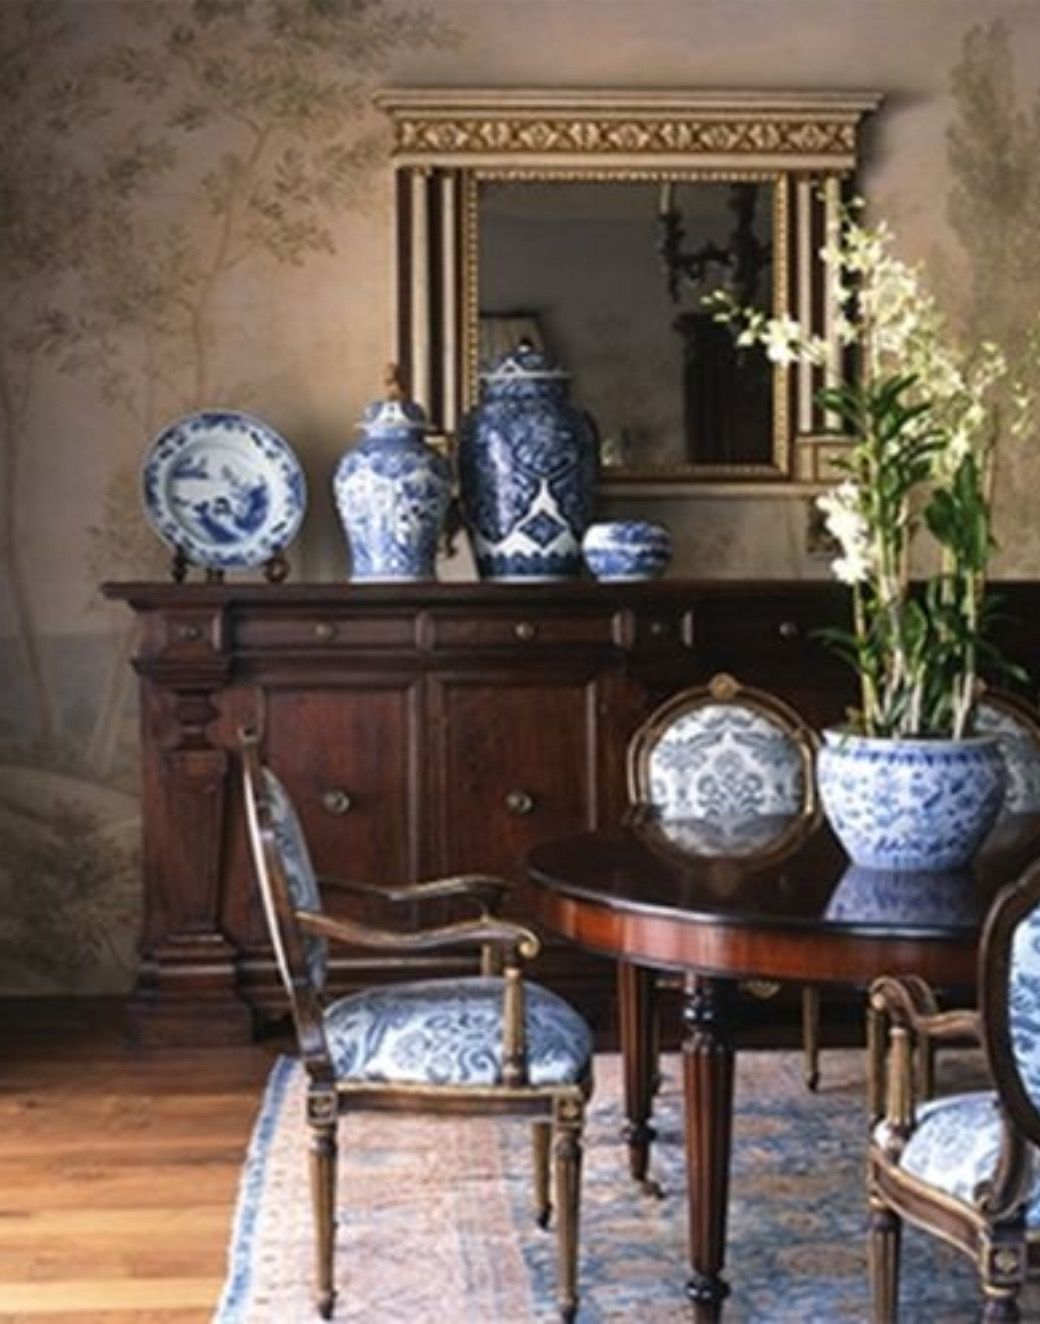 pin by goldie stetten on blue and white obsession pinterest